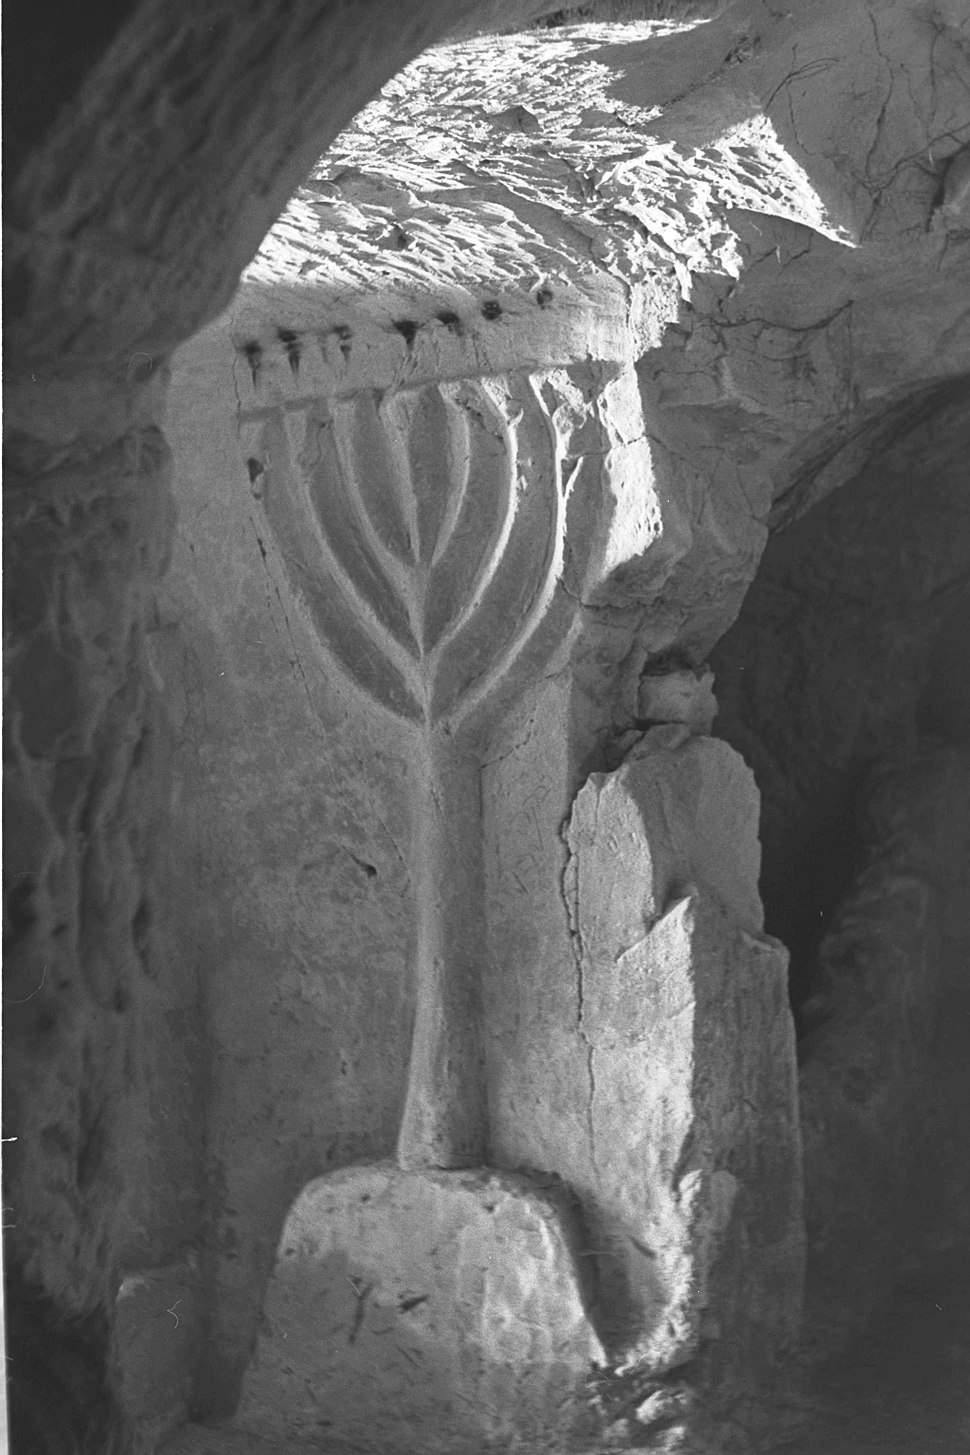 Flickr - Government Press Office (GPO) - Burial Chambers at the Beit Shearim Caves